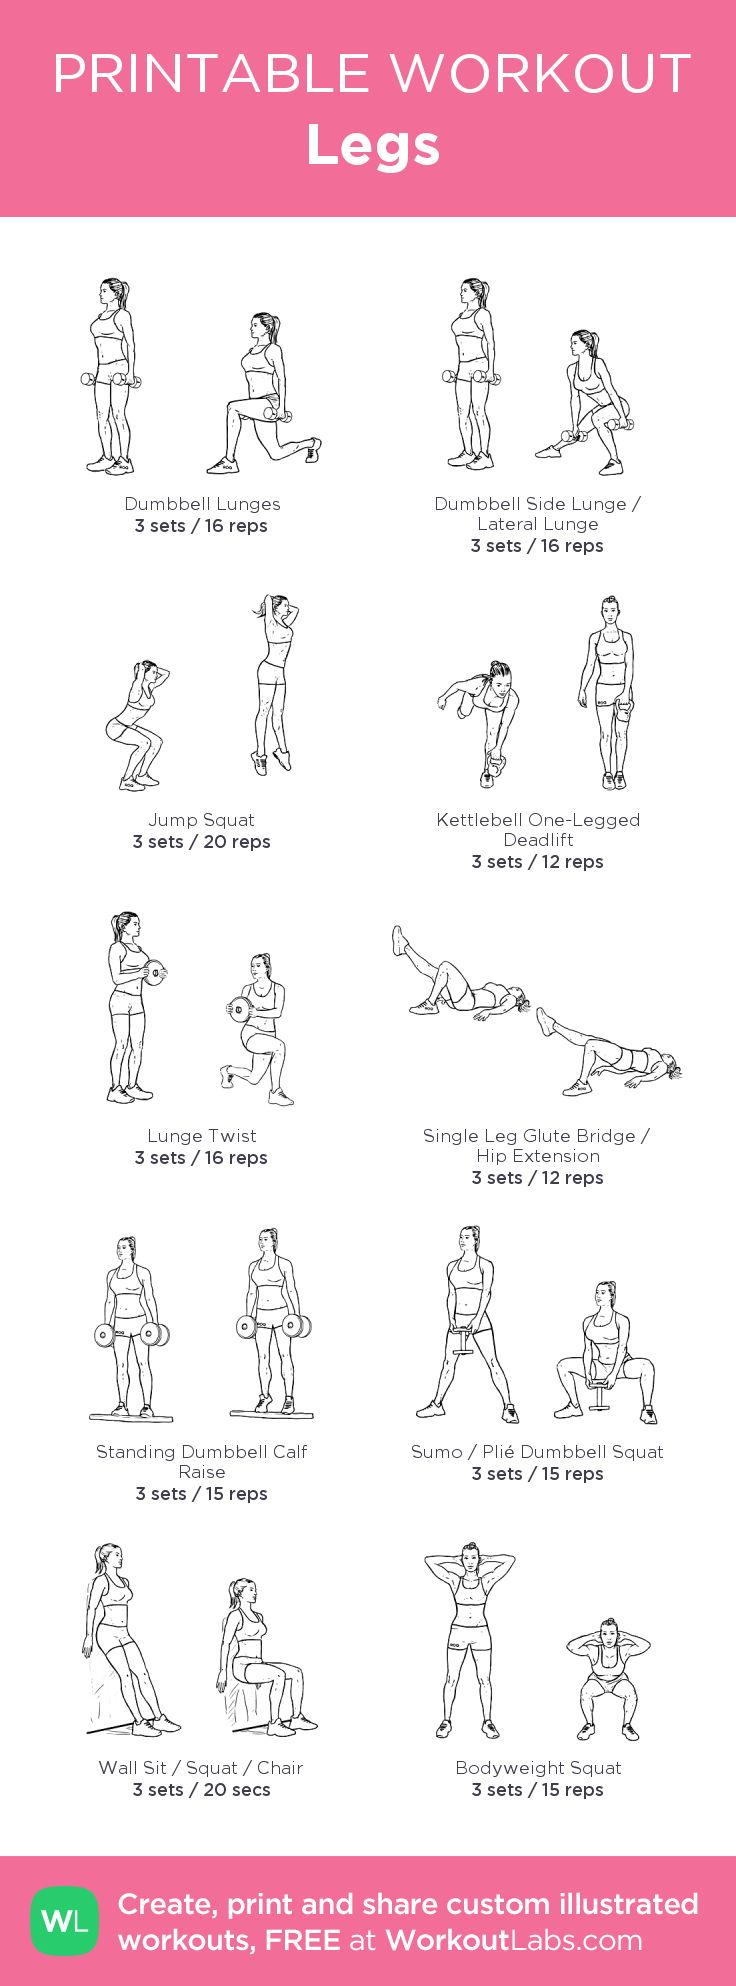 Legs –my custom workout created at WorkoutLabs.com